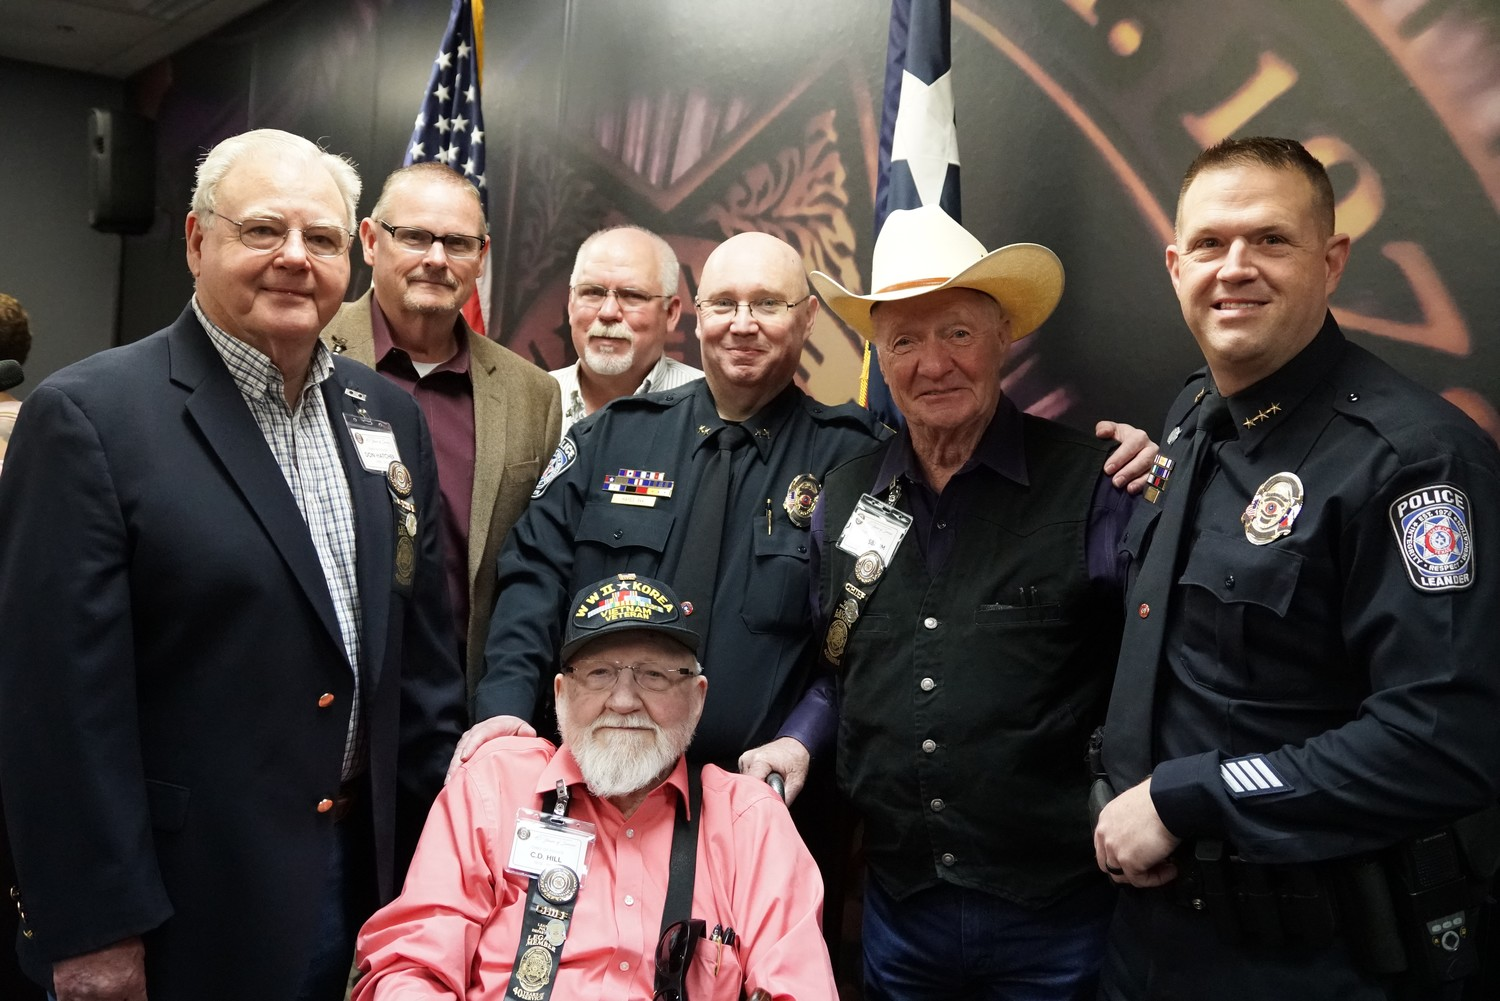 All six former Leander Police Chiefs attended the Leander Police Dept. 40th Anniversary event.